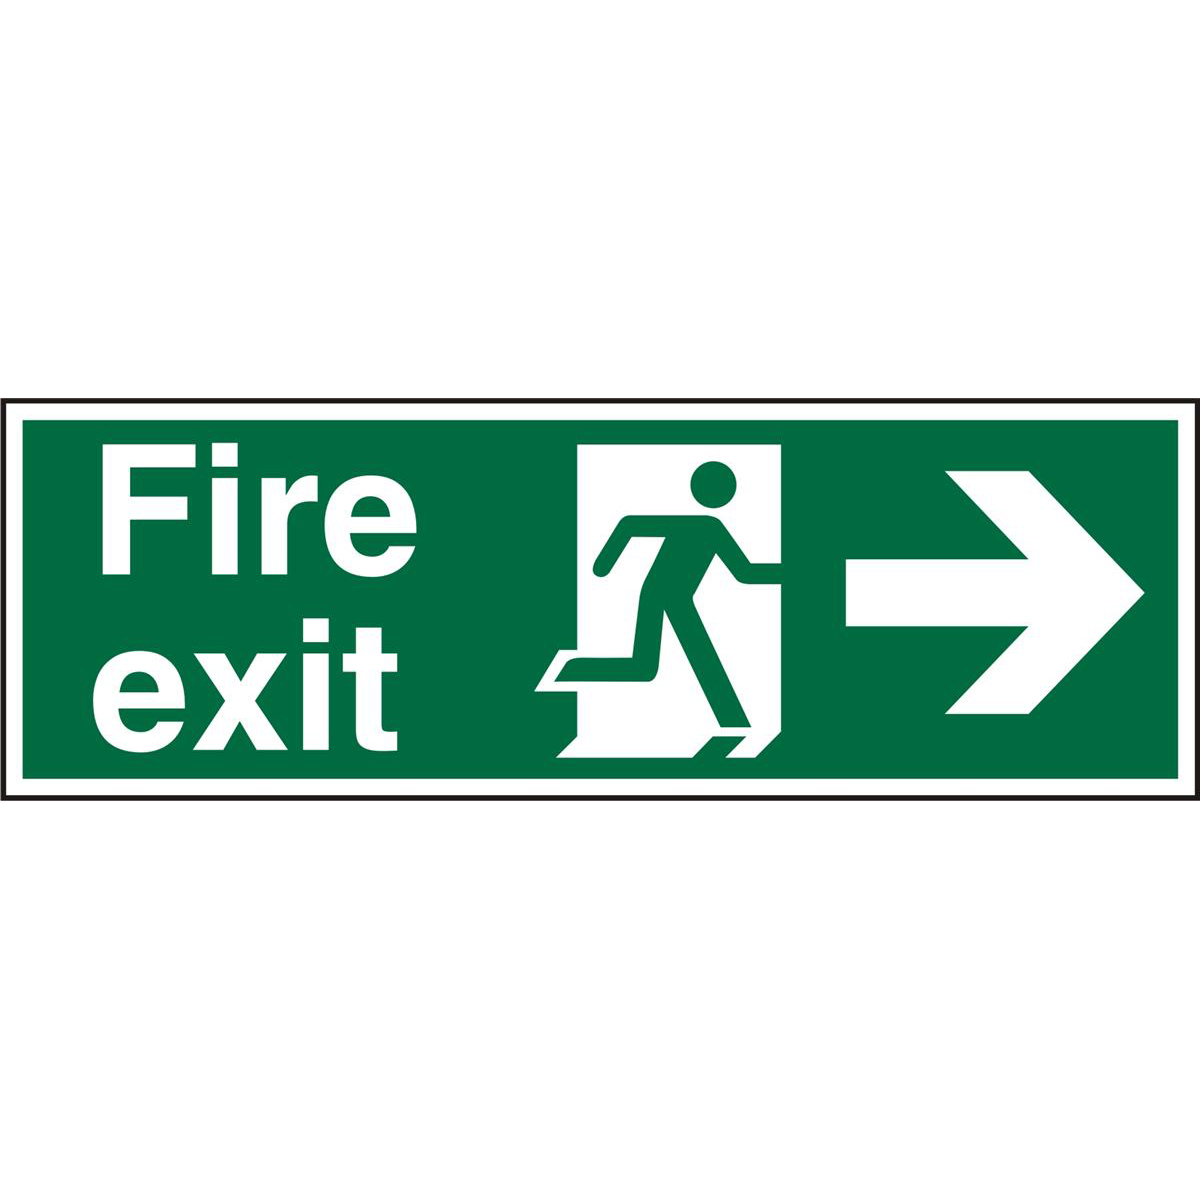 Prestige Sign 2mm DS 300x100 FireExit Man Running&Arrow Right Ref ACSP121300x100 *Up to 10 Day Leadtime*